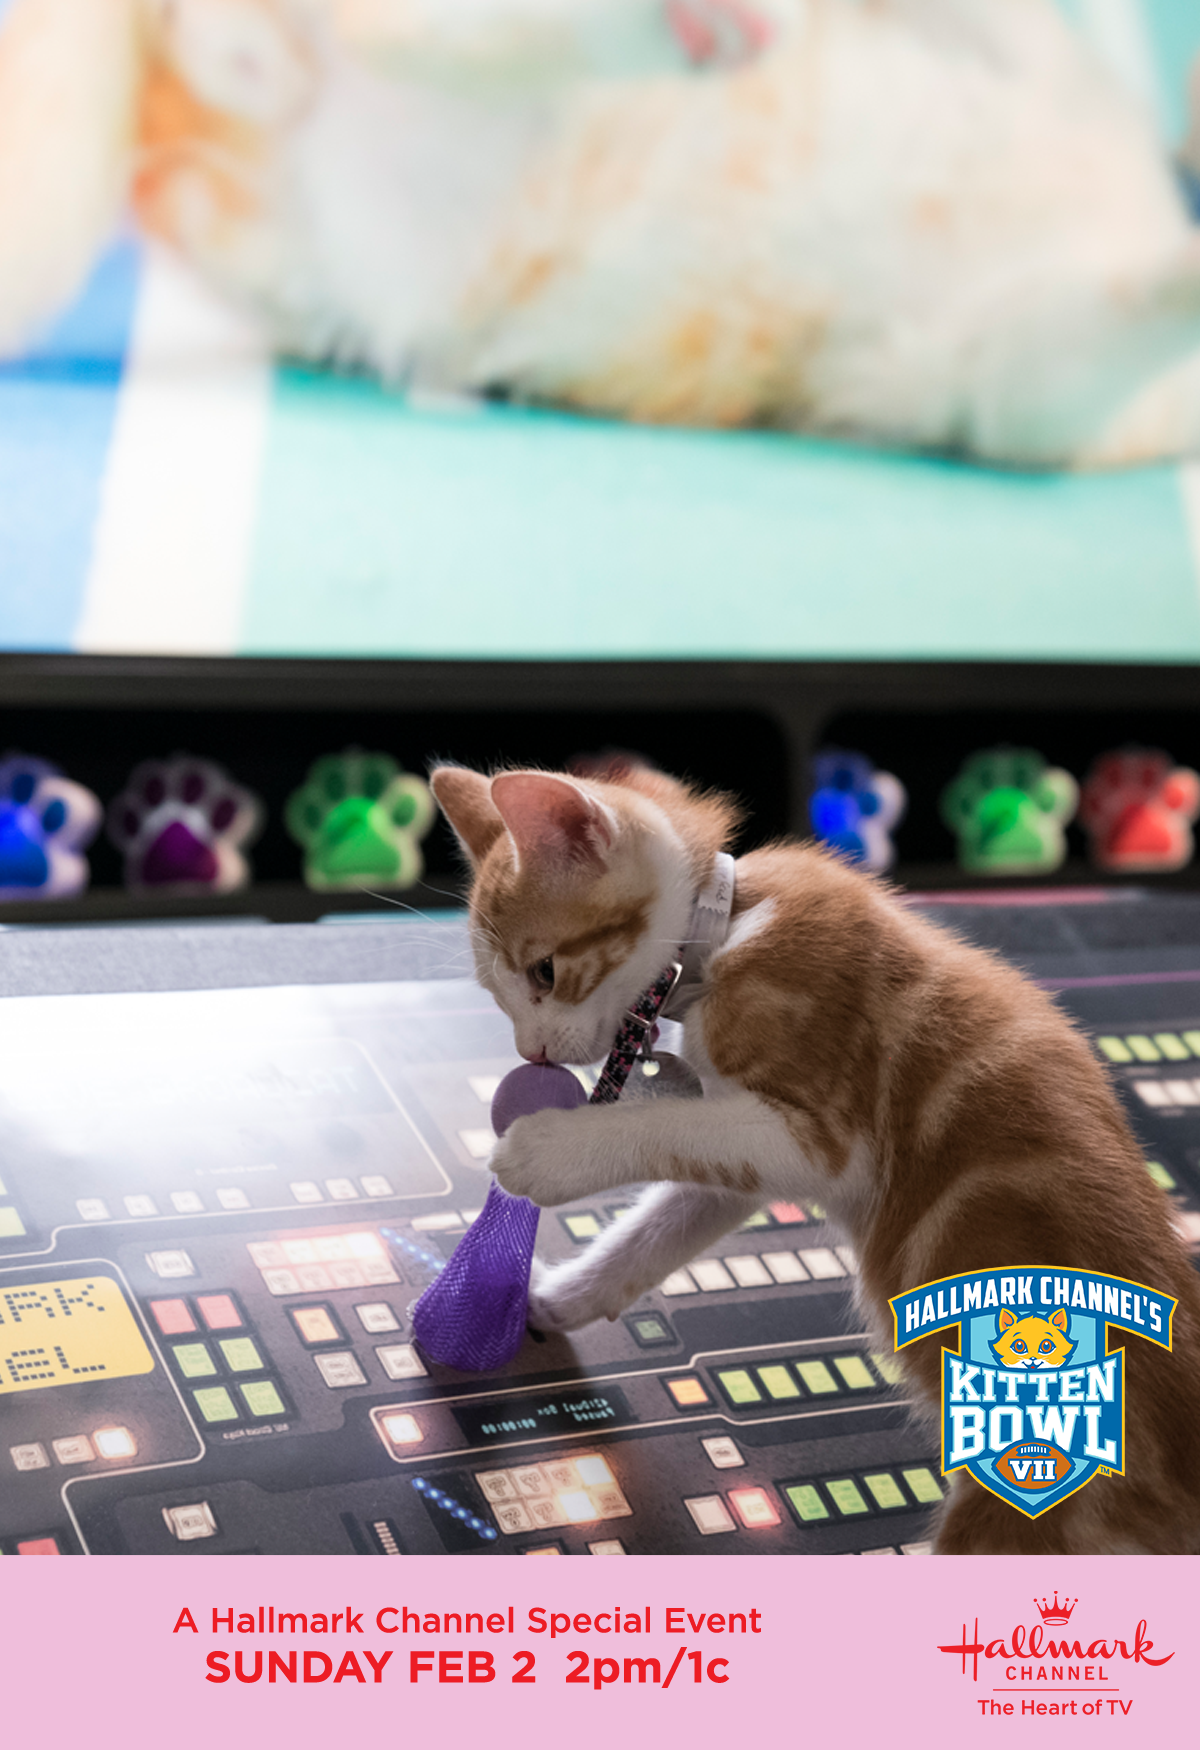 It S Chaos In The Control Room As The Action Heats Up On The Field In Catbowl2 Join Us February 1 At 11pm 10c On Hall In 2020 Cat Bowls Hallmark Channel Kitten Bowls